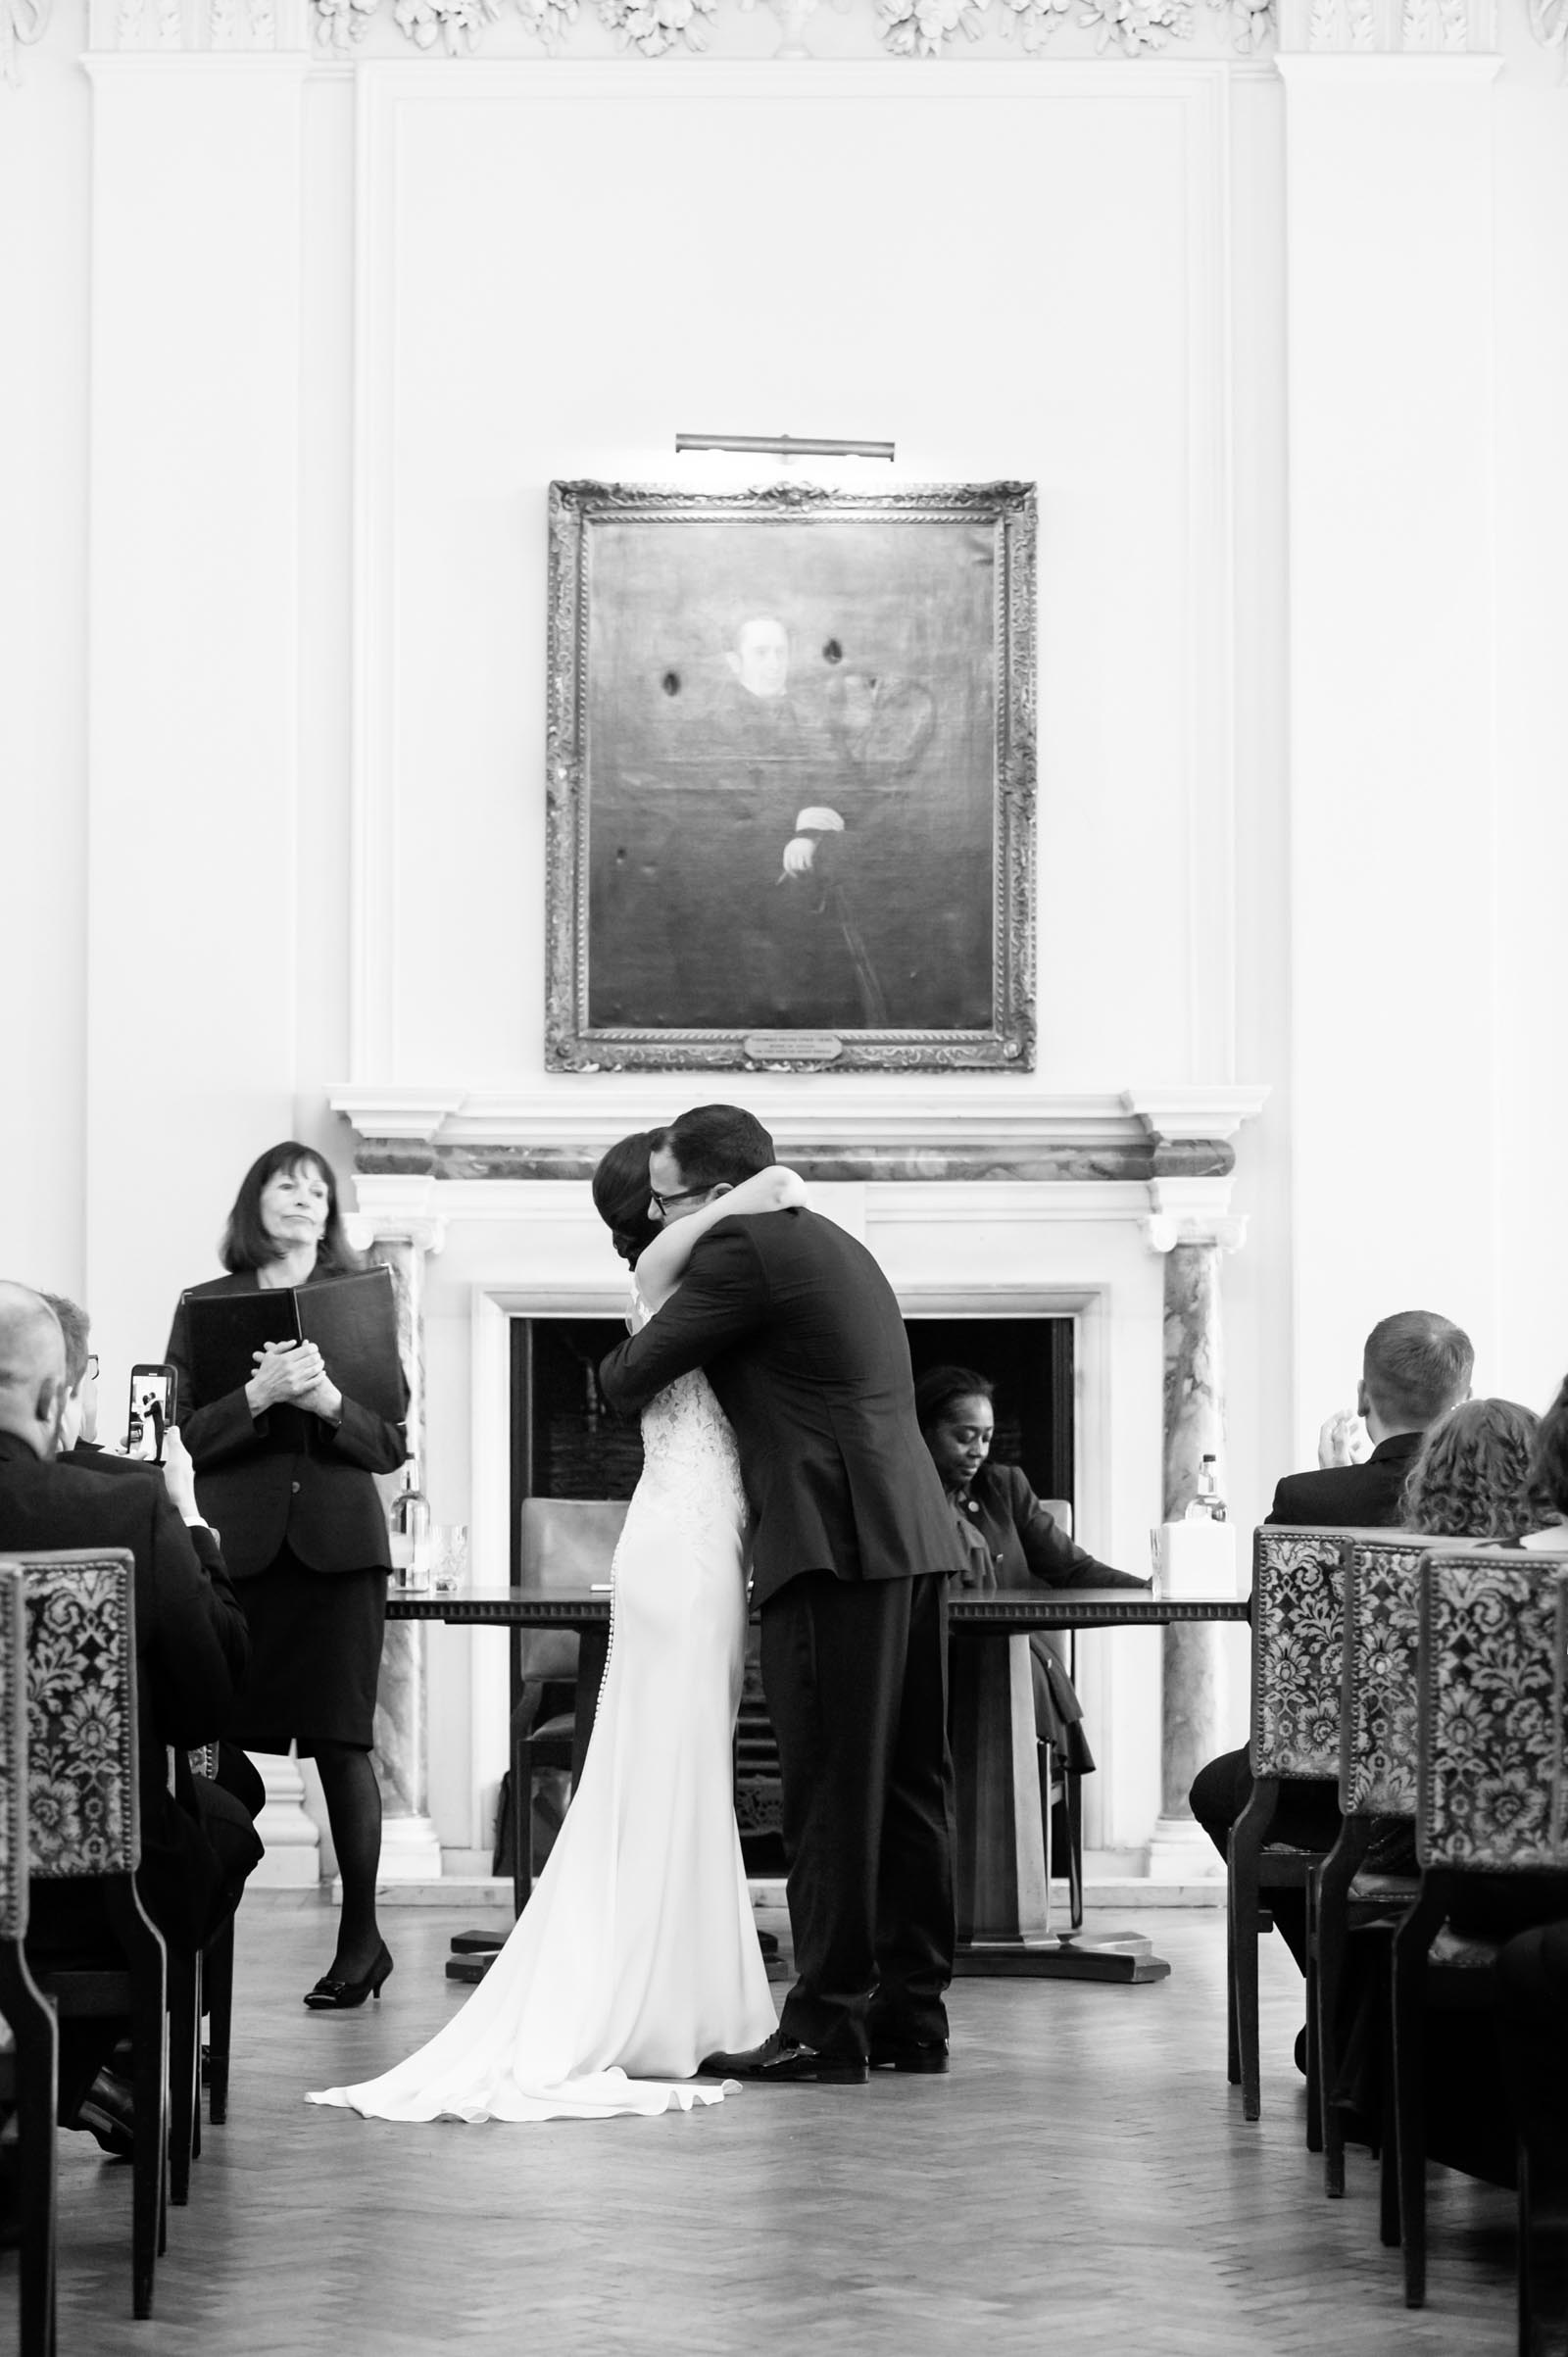 Couple embracing during wedding ceremony